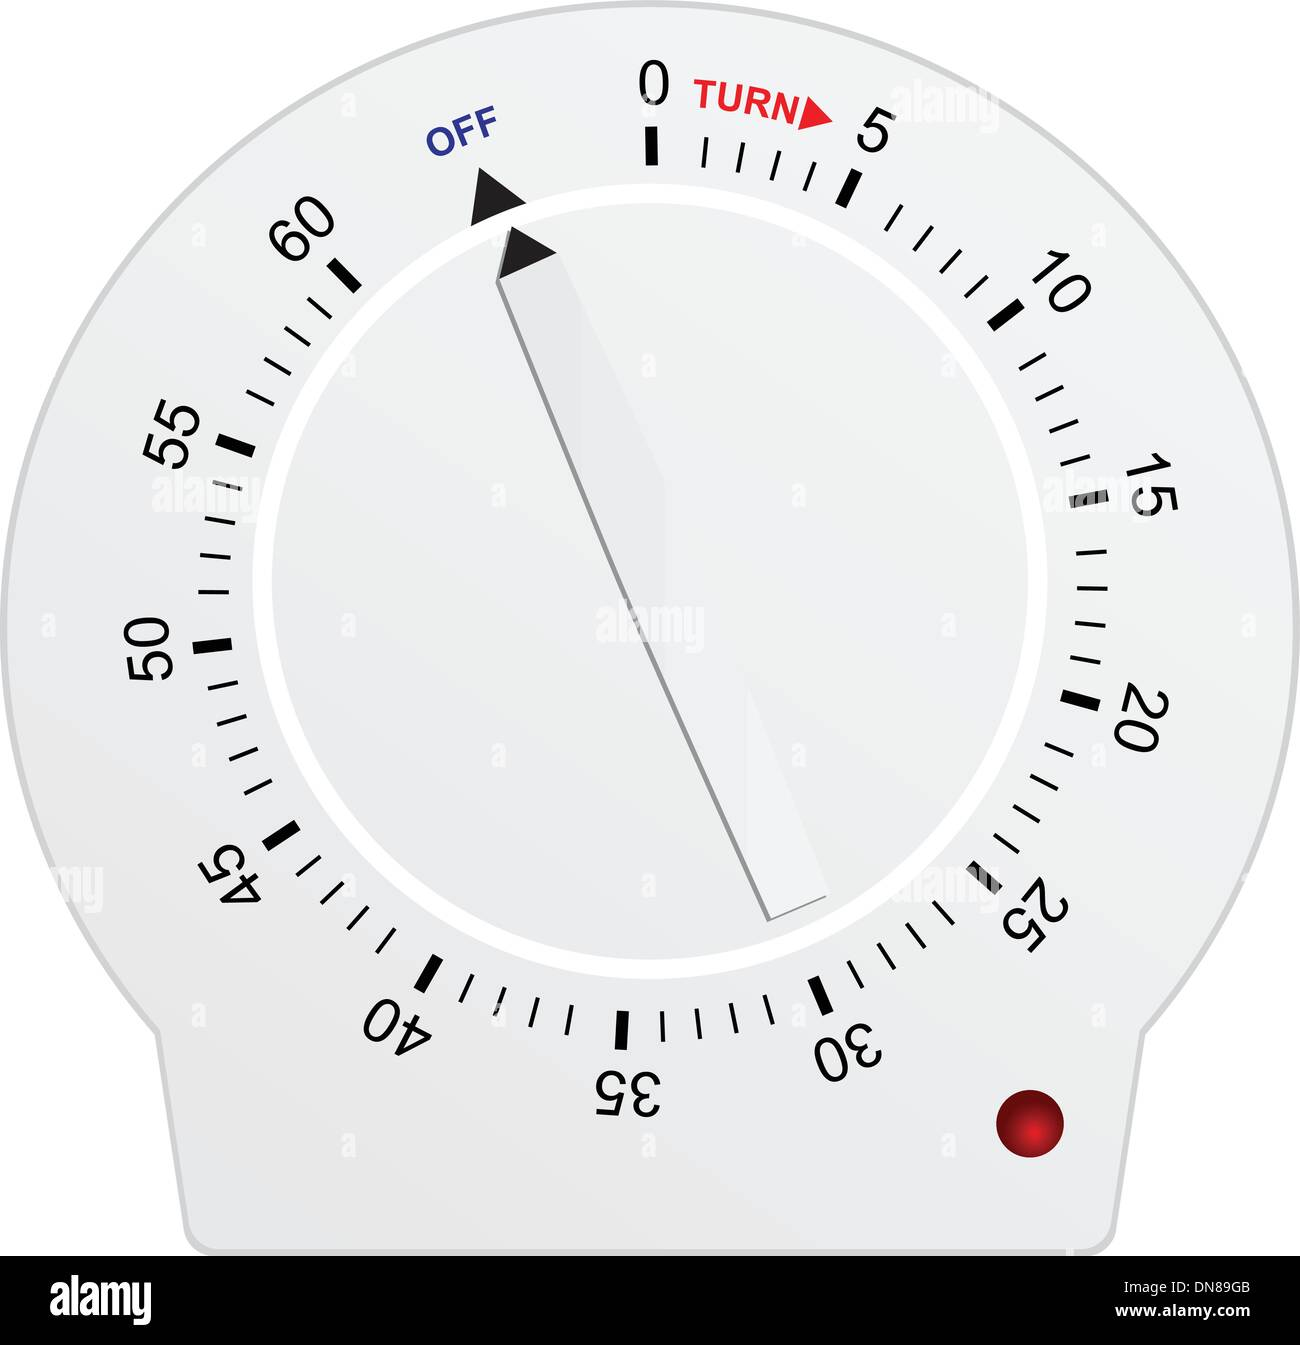 Timer for 60 seconds - Stock Image